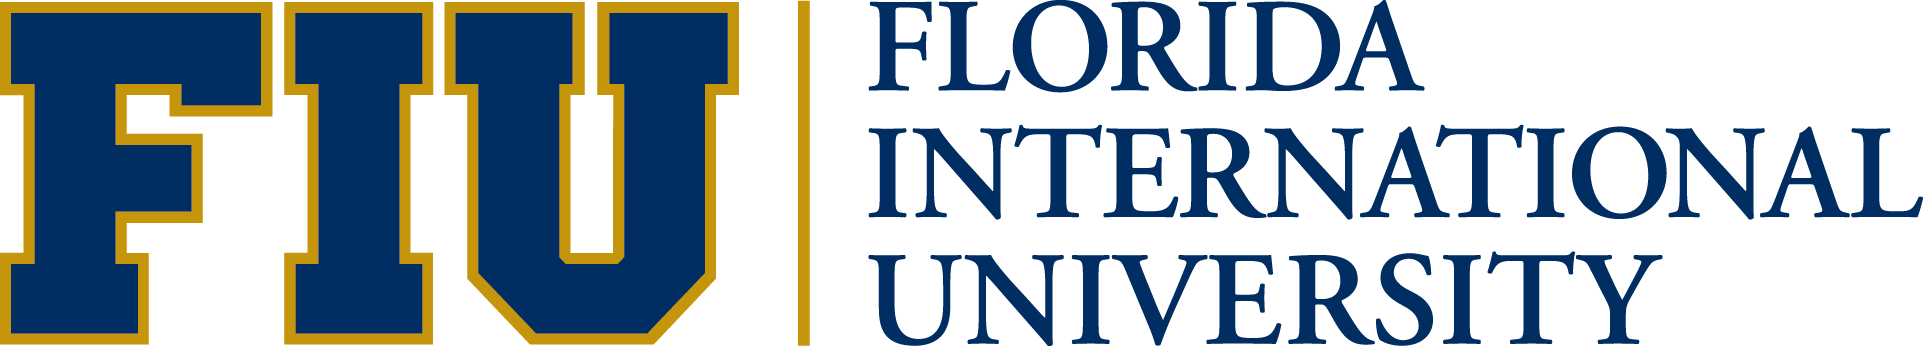 logo_FIU_facilities